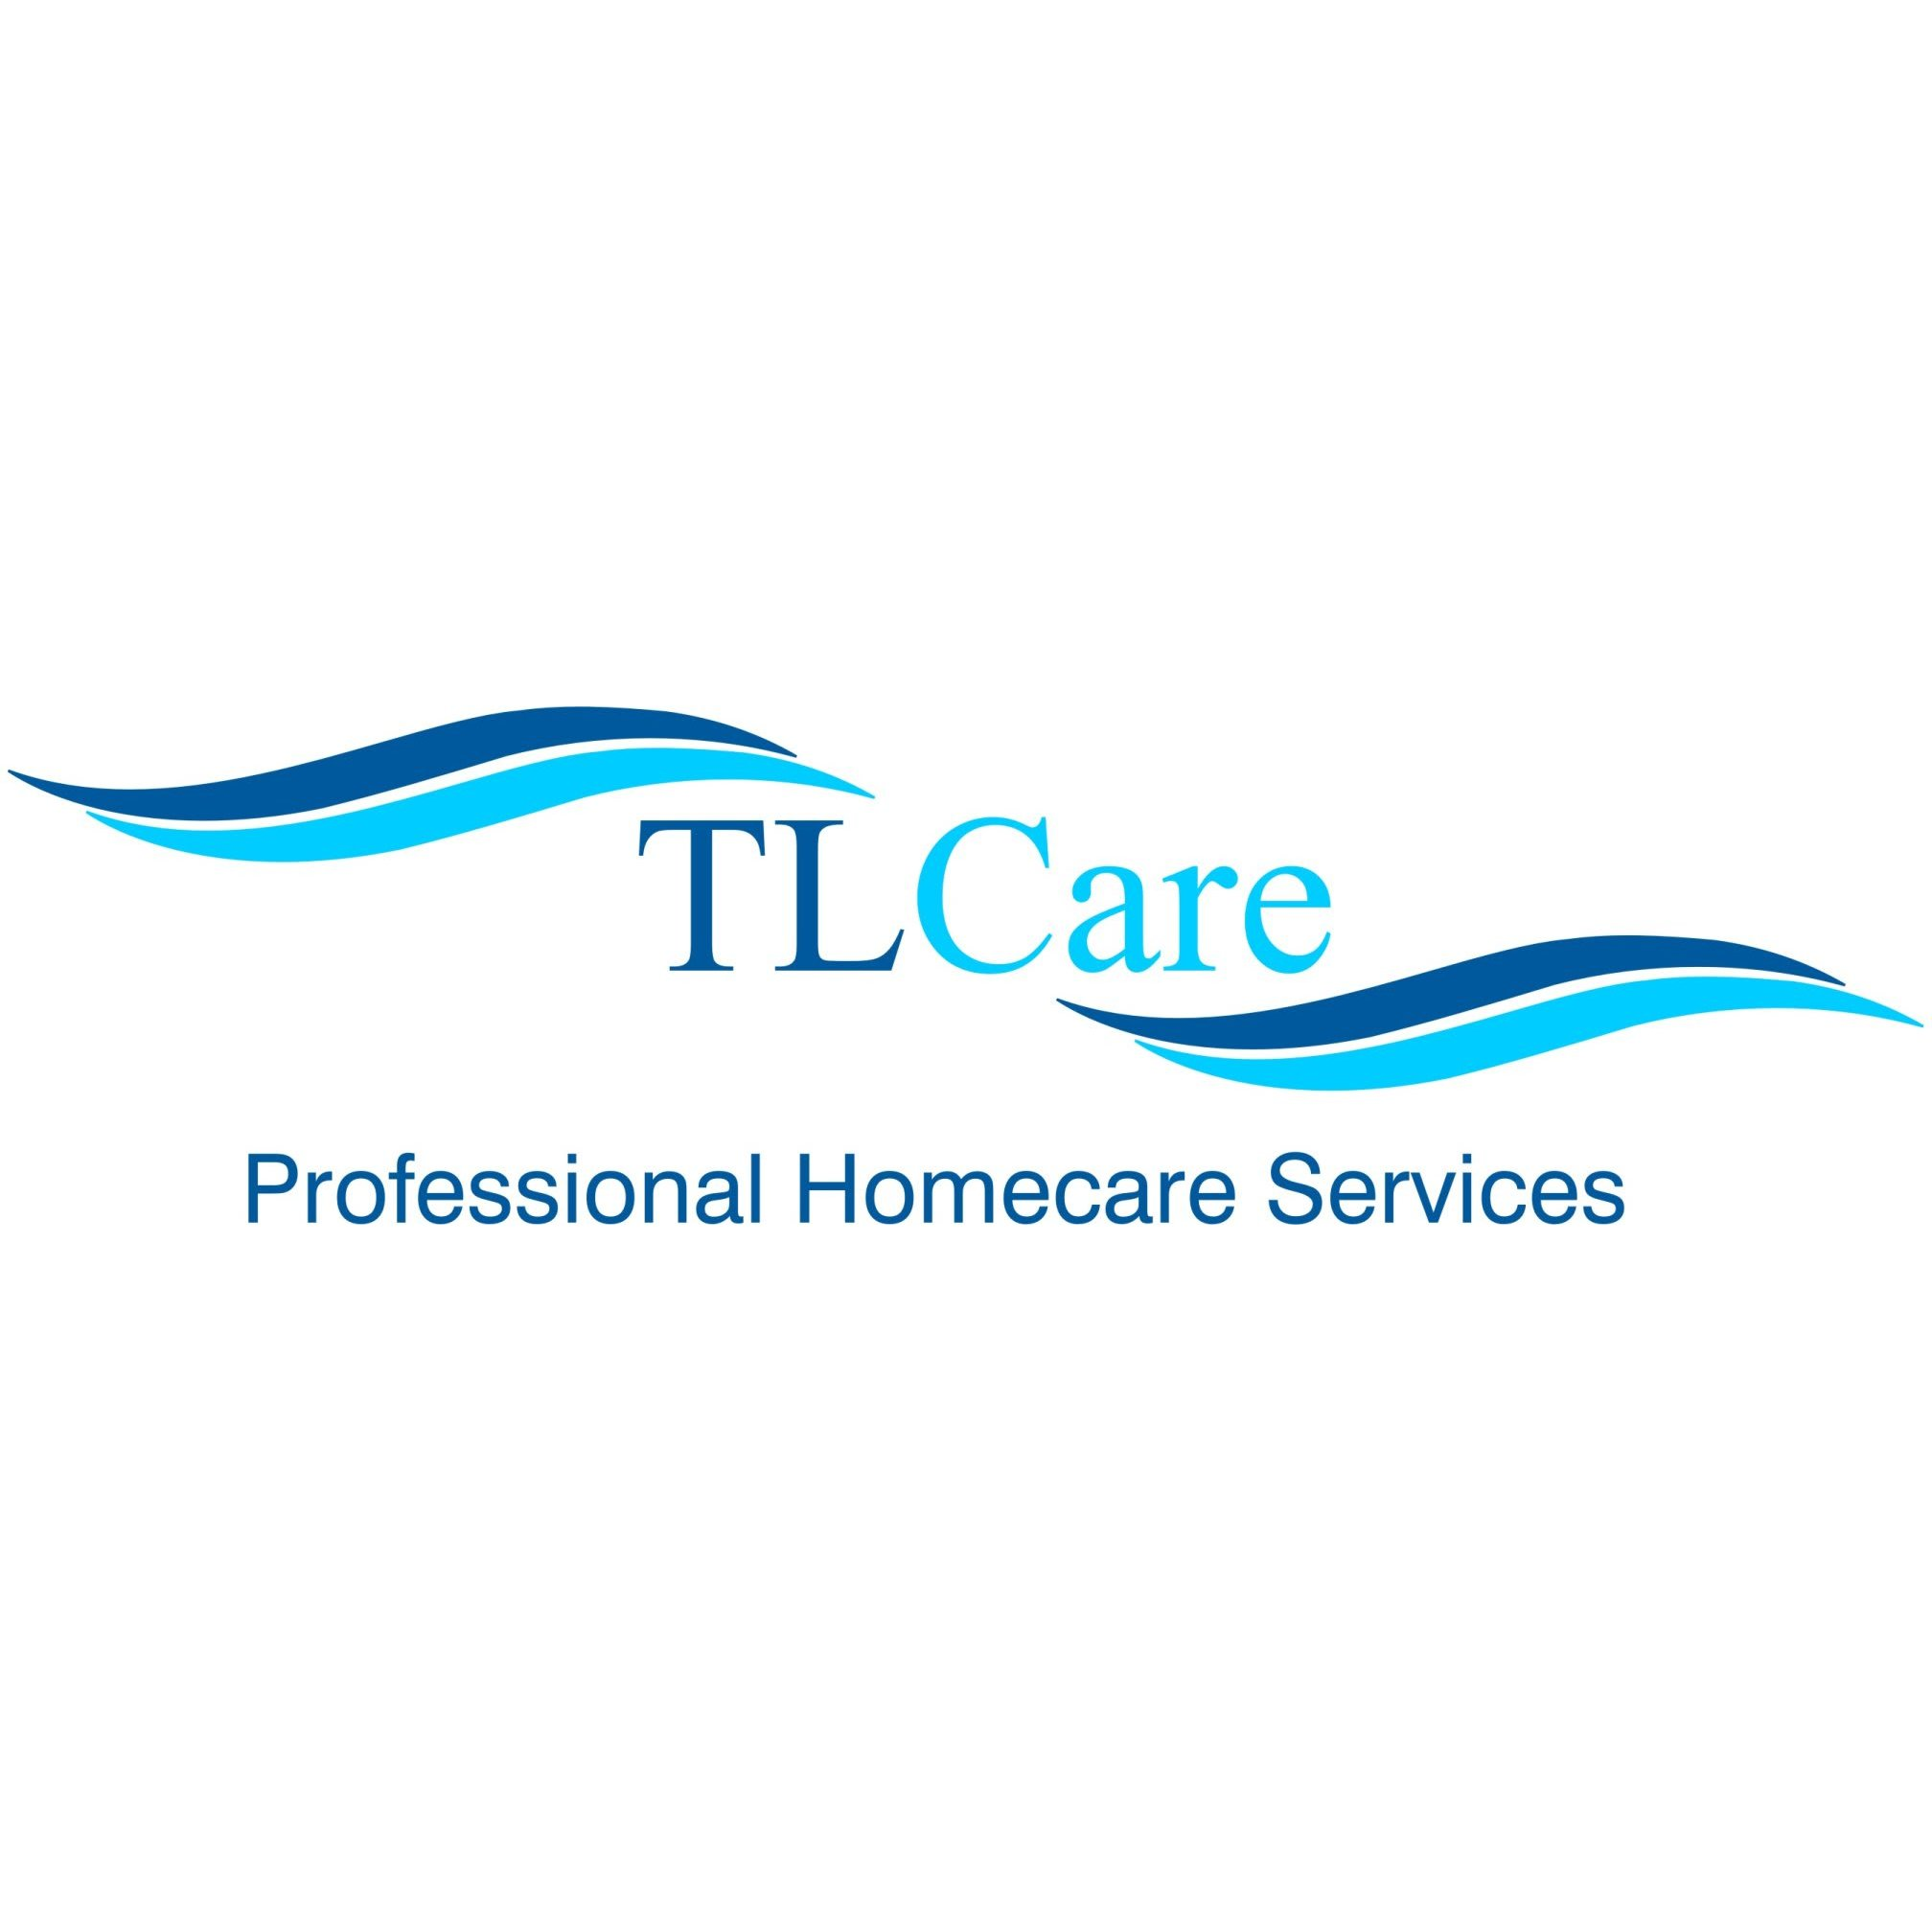 T L Care (NW) Ltd - Wirral, Merseyside CH47 2BG - 01516 324065 | ShowMeLocal.com